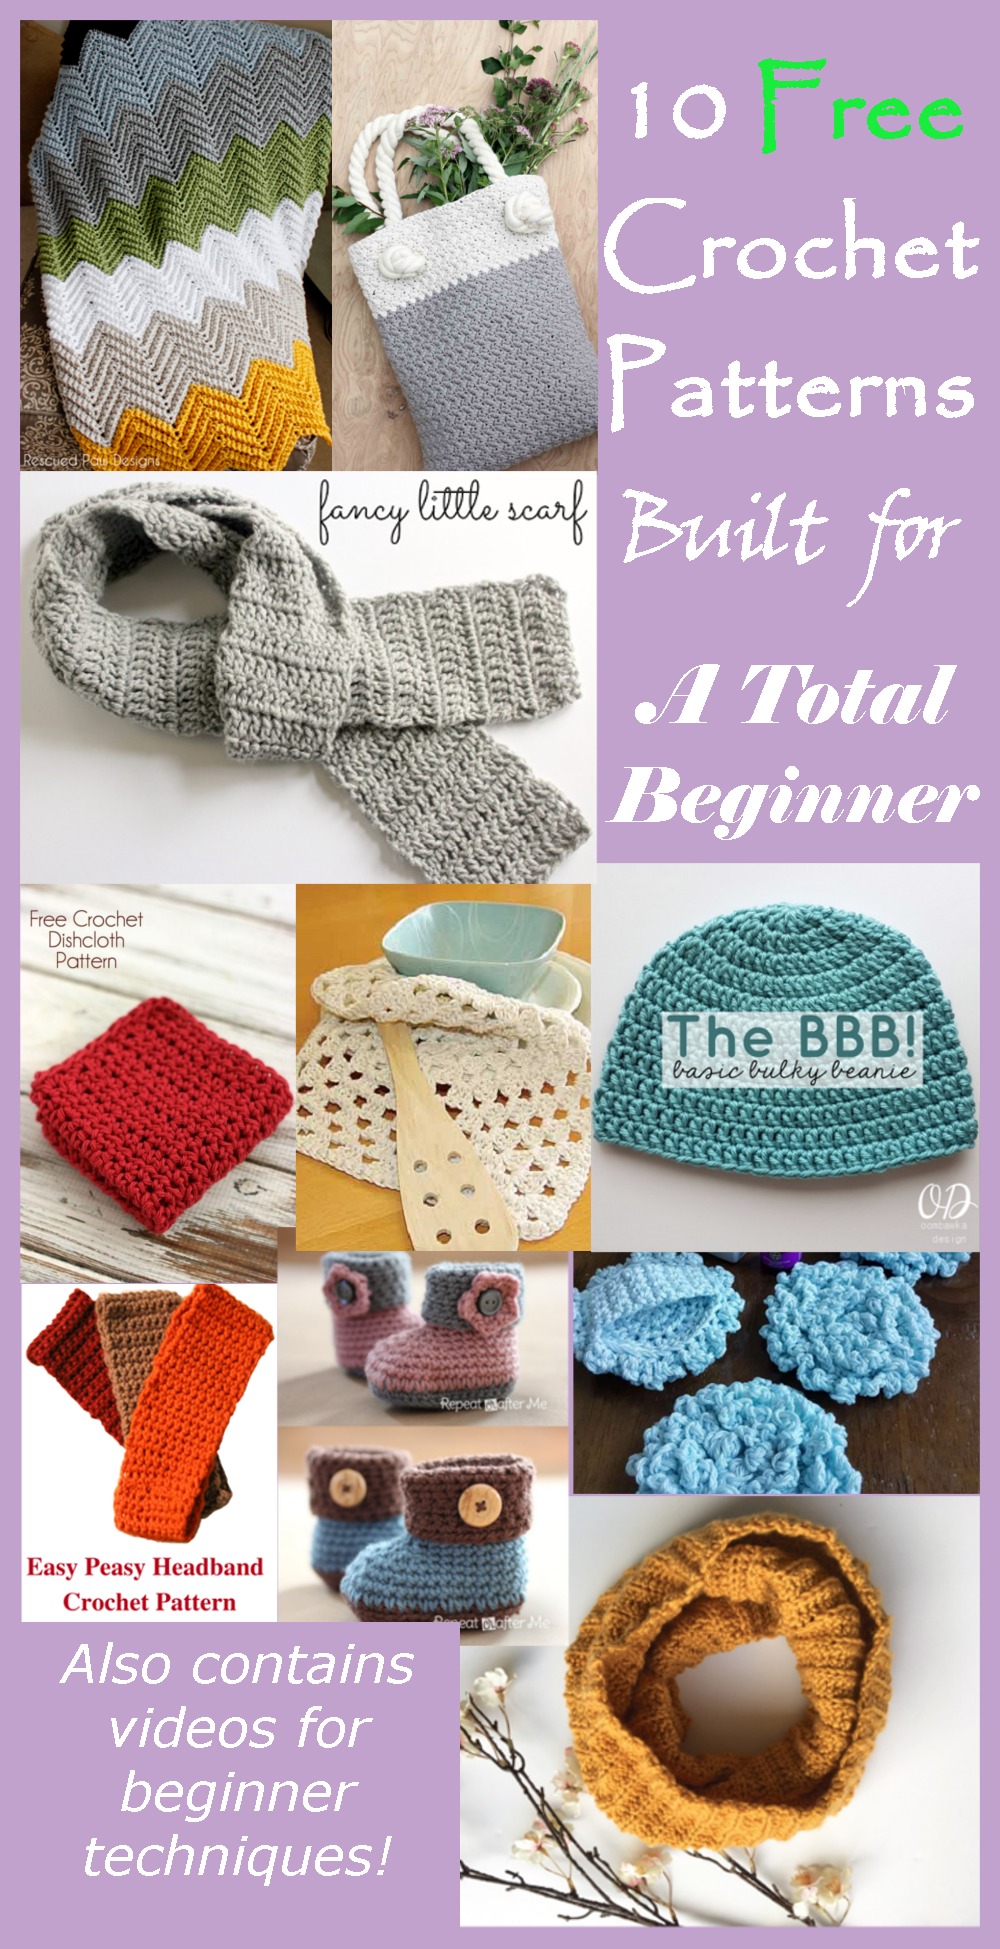 Beginner Crochet Pattern Round Up - Caitlin's Contagious